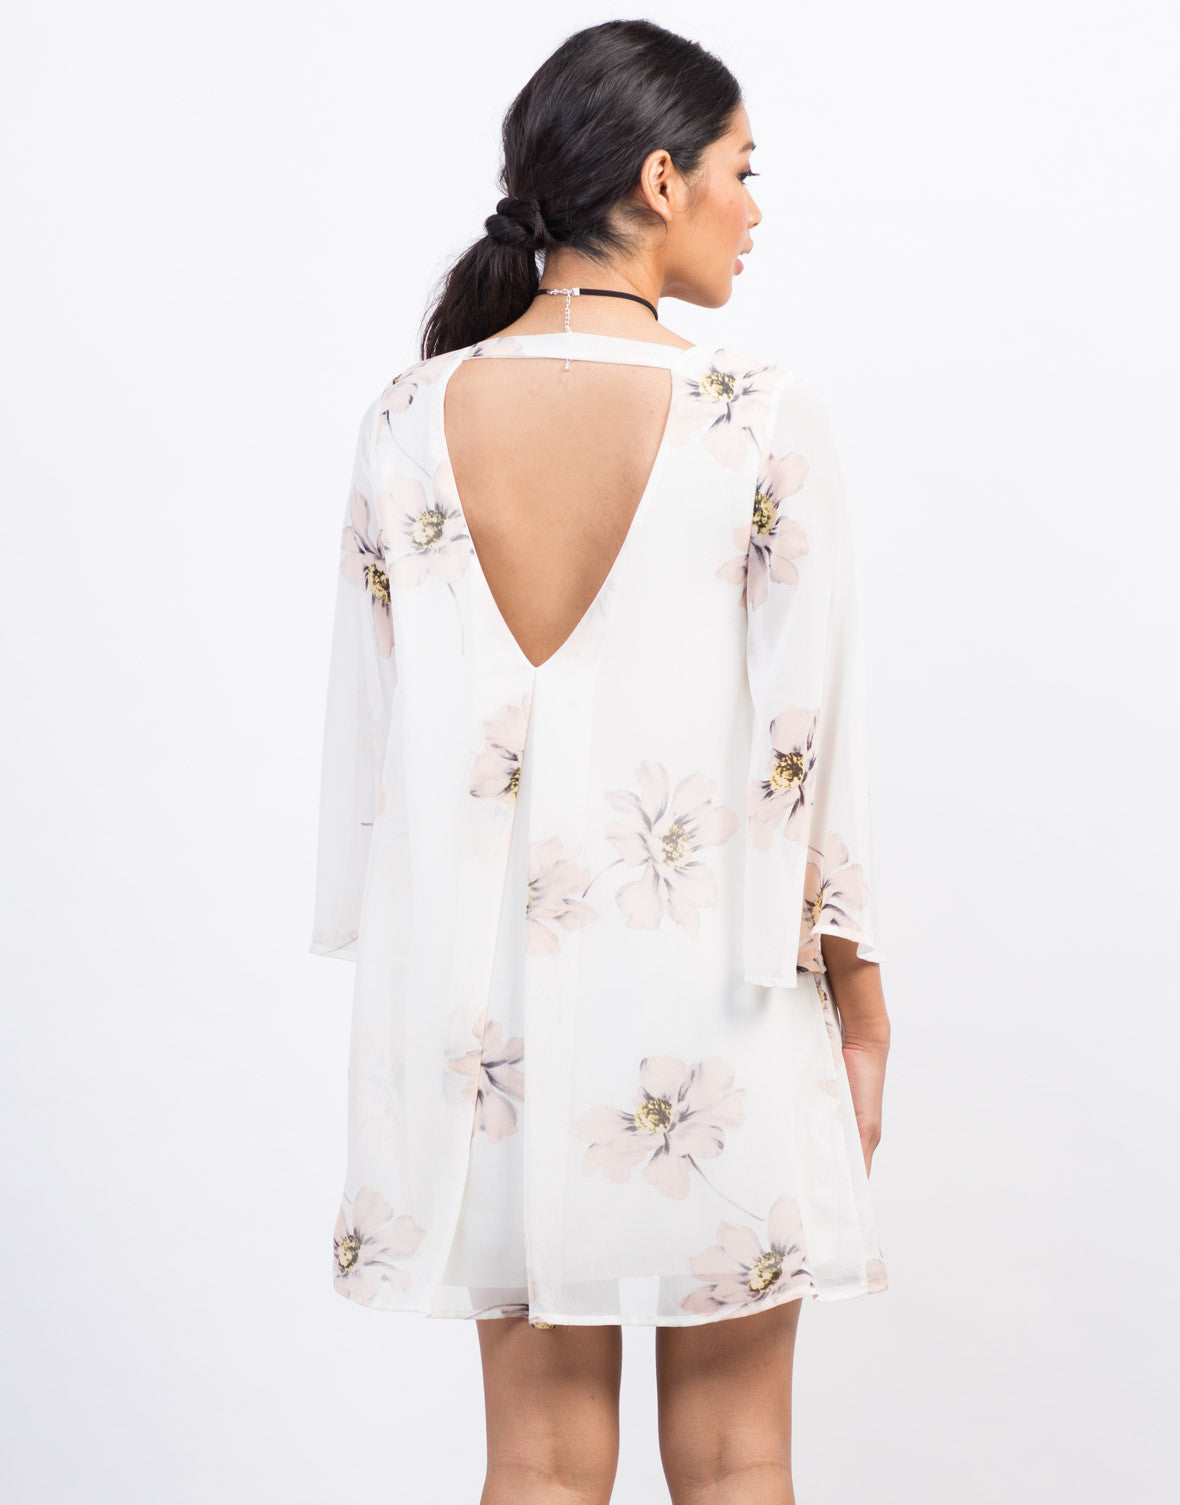 Back View of Flowy Chiffon Floral Shift Dress